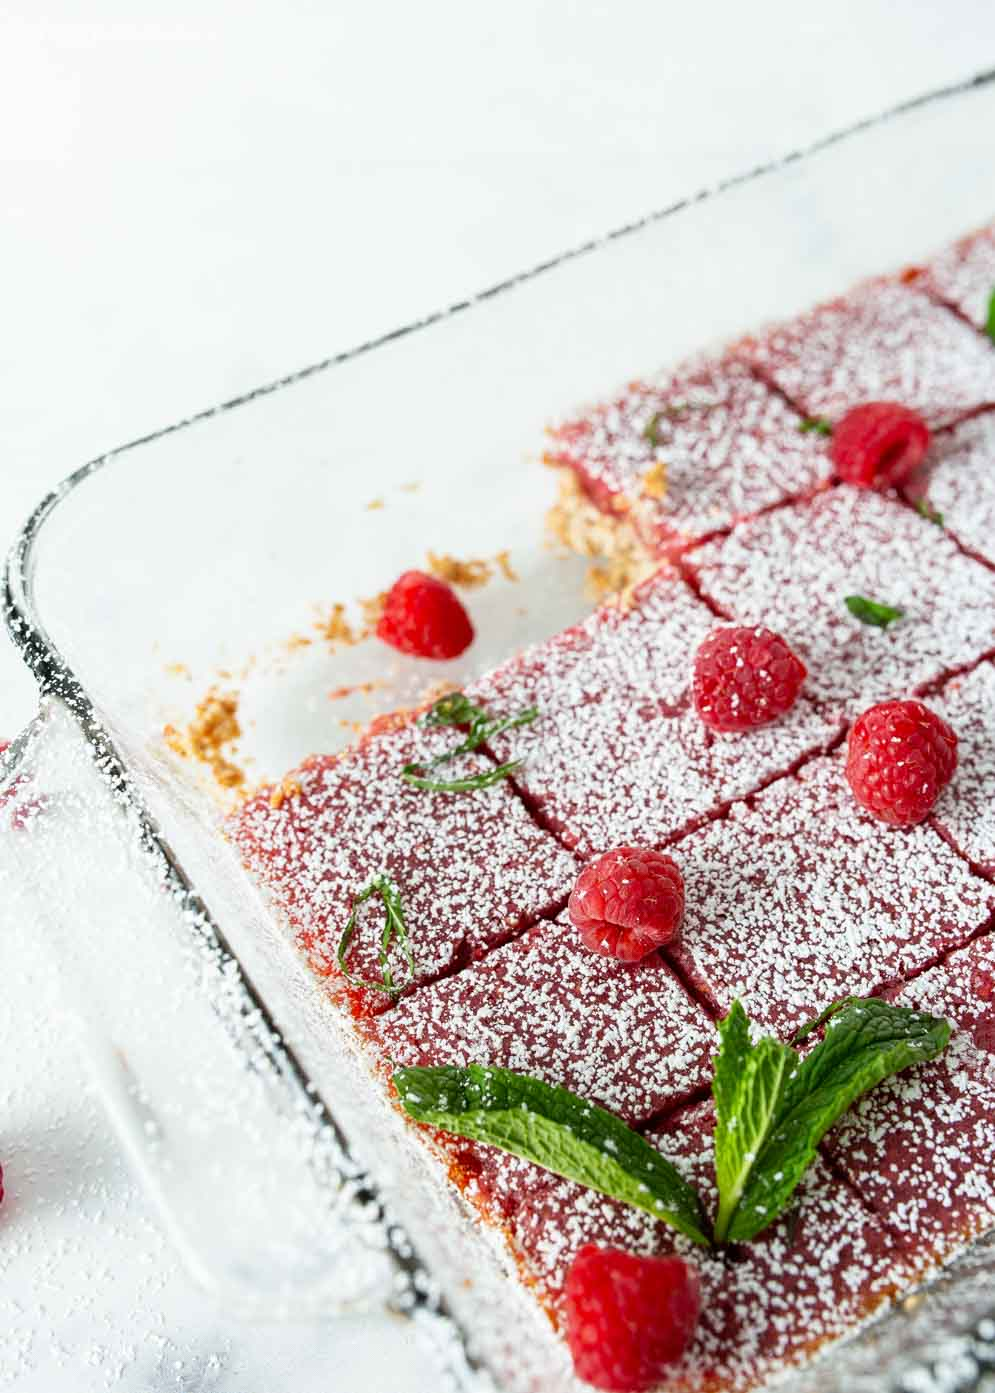 Pan of Vegan Raspberry Lemon Bars with two squares taken out and decorated with powdered sugar and fresh raspberries